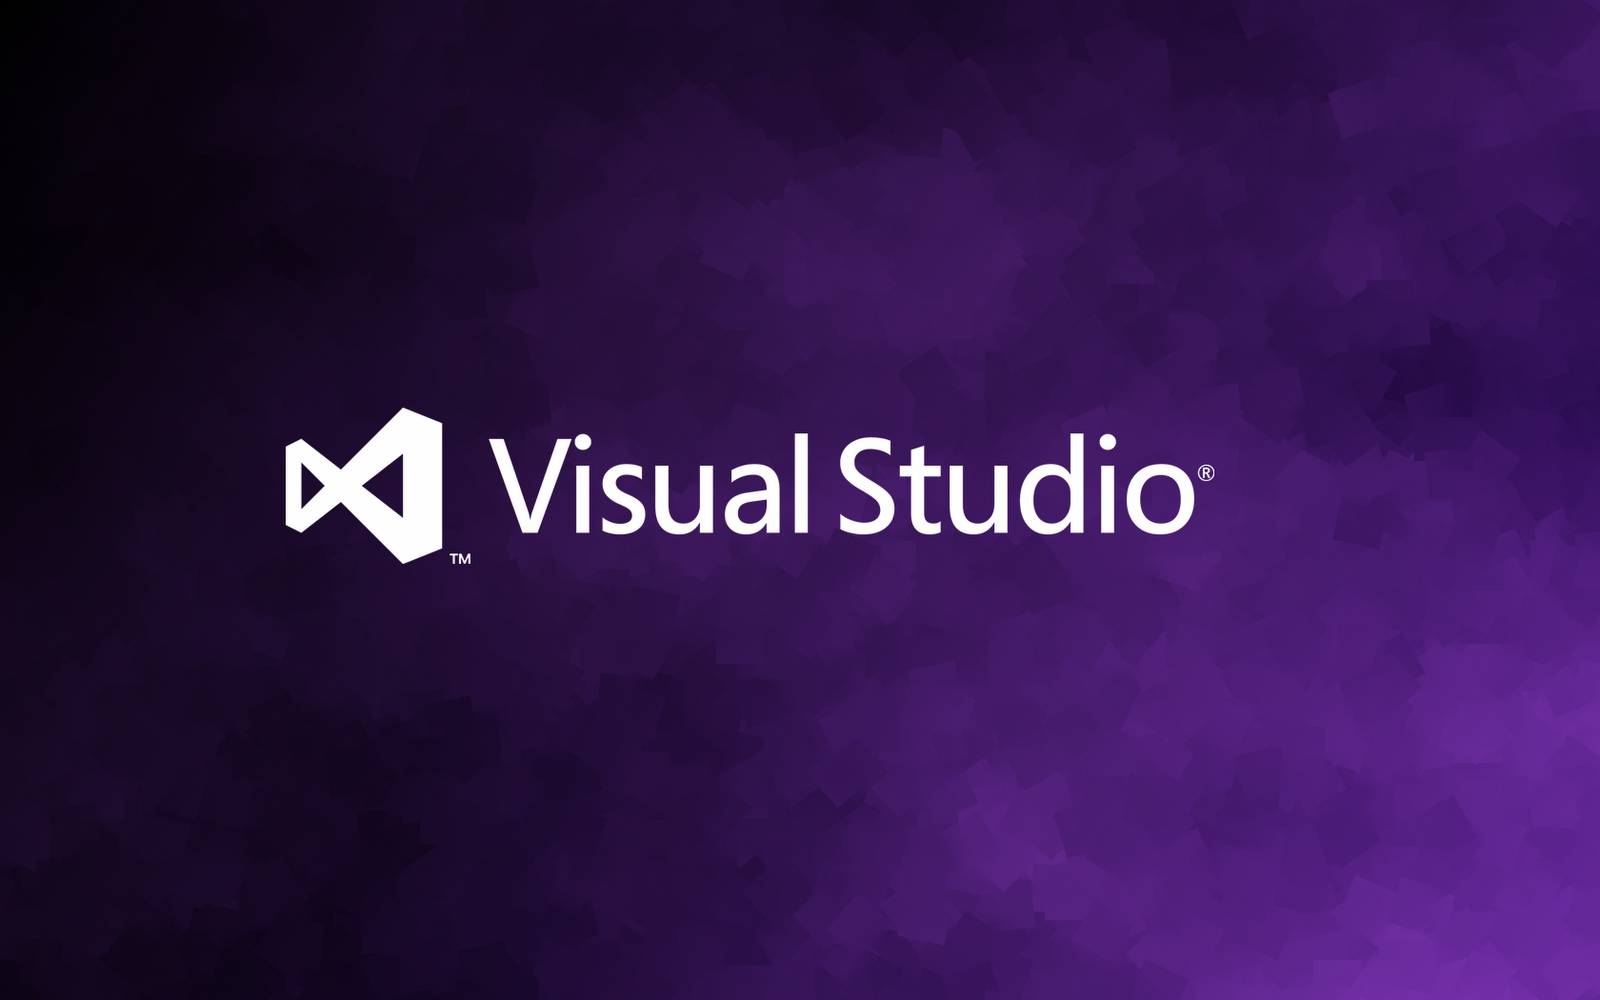 IT Recipes Collection of Visual Studio VS 2012 Wallpapers 1600x1000